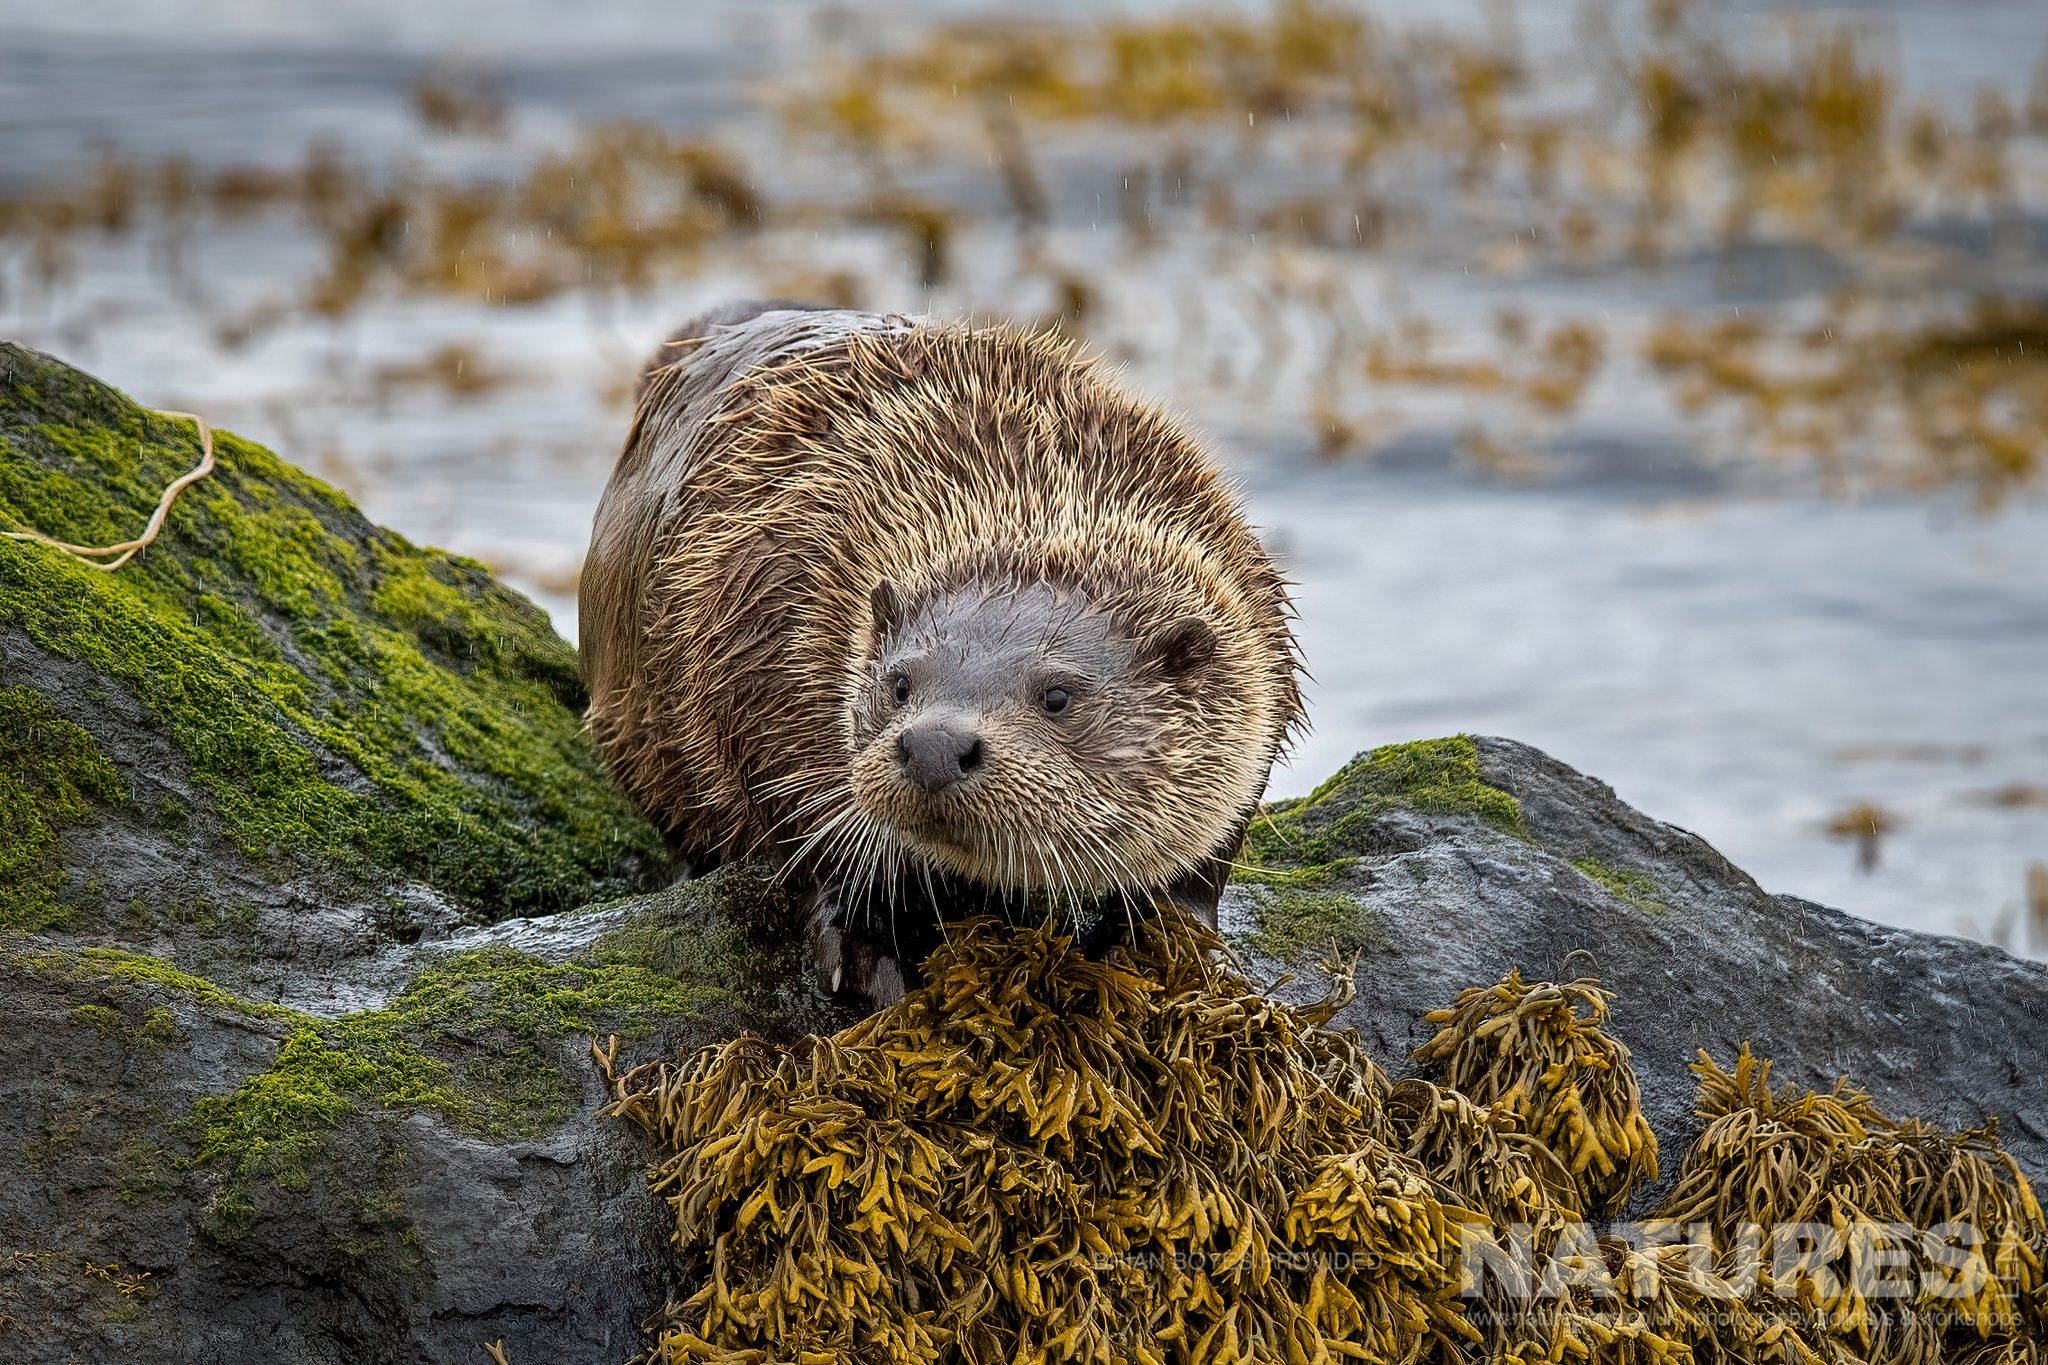 One of the Eurasian Otters found on Mull as can be photographed during the NaturesLens WIldlife of Mull Photography Holiday